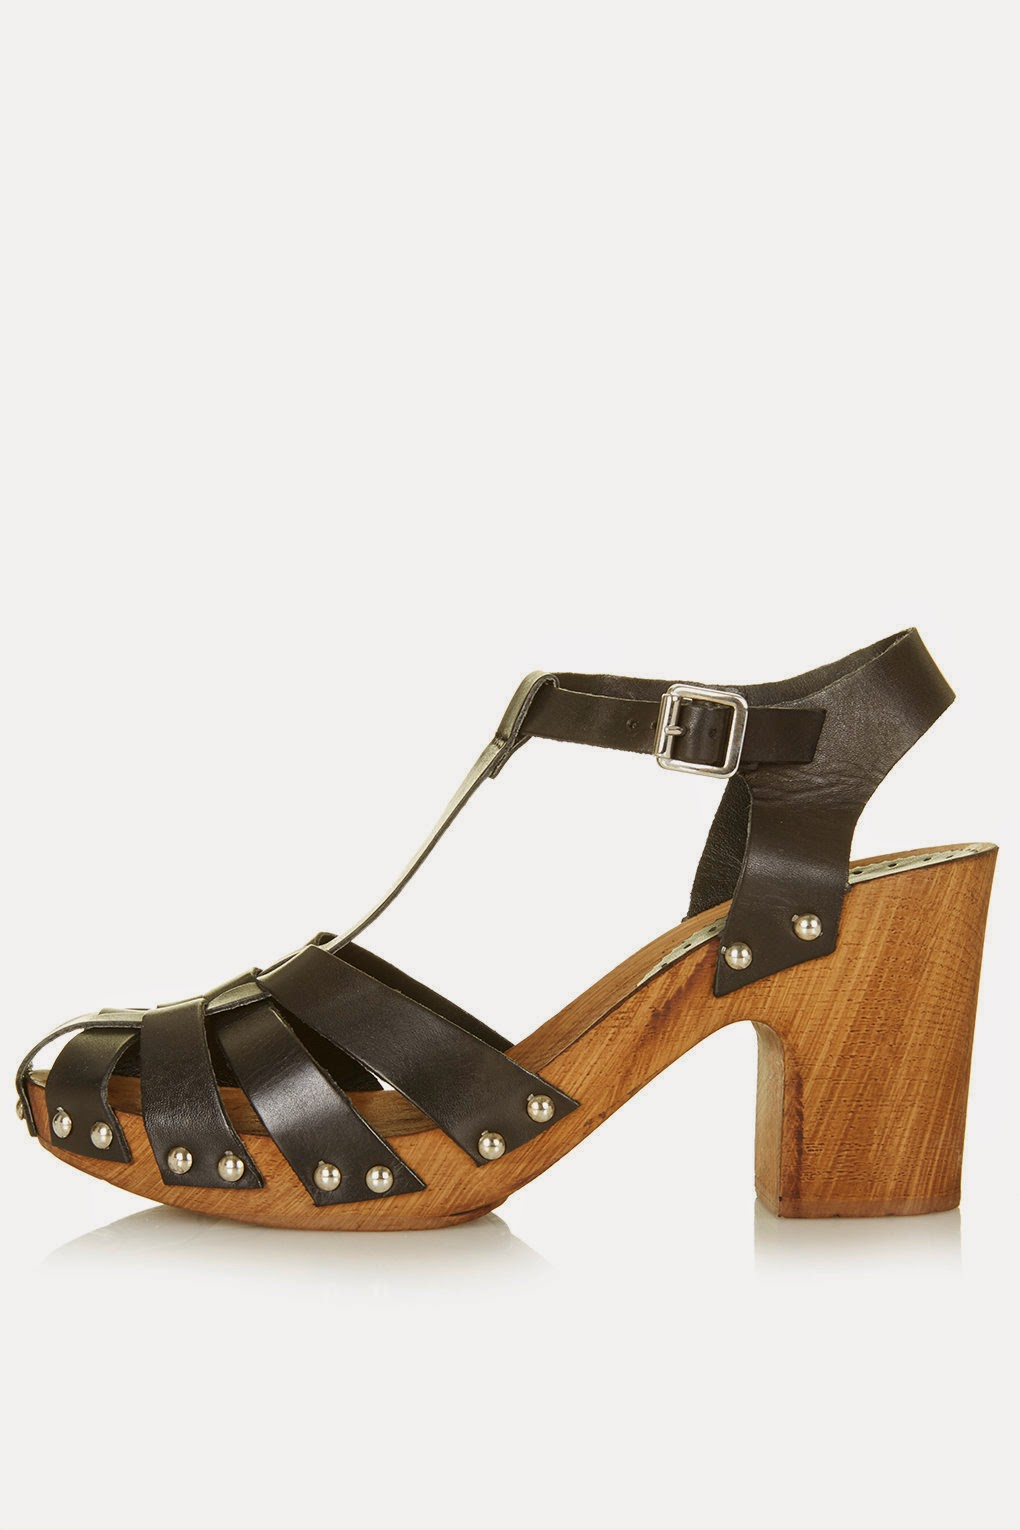 topshop nelly shoes, wooden heel black shoe,